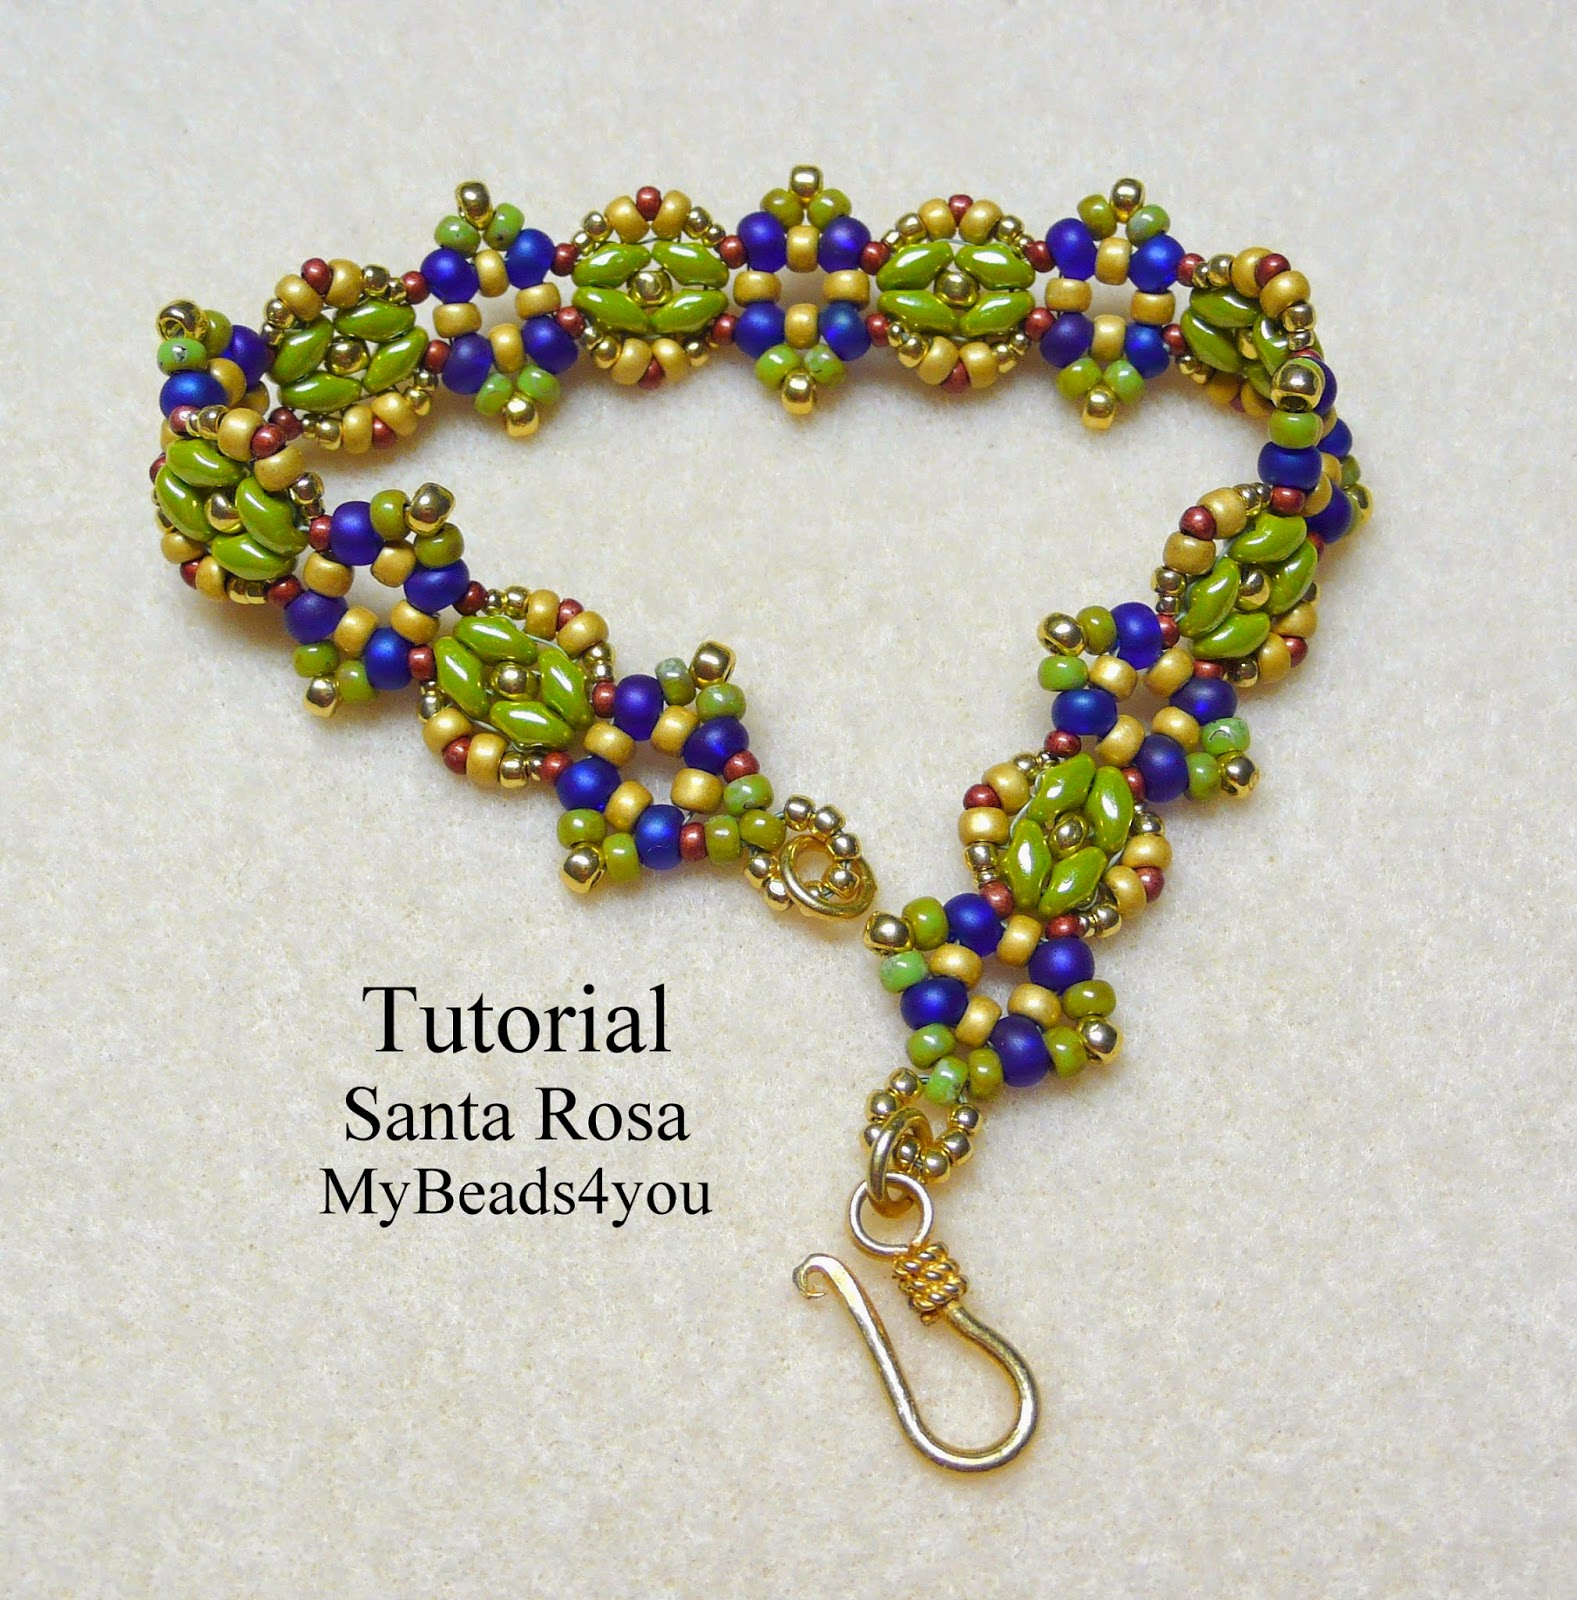 Santa Rosa Tutorial By My Beads 4 You